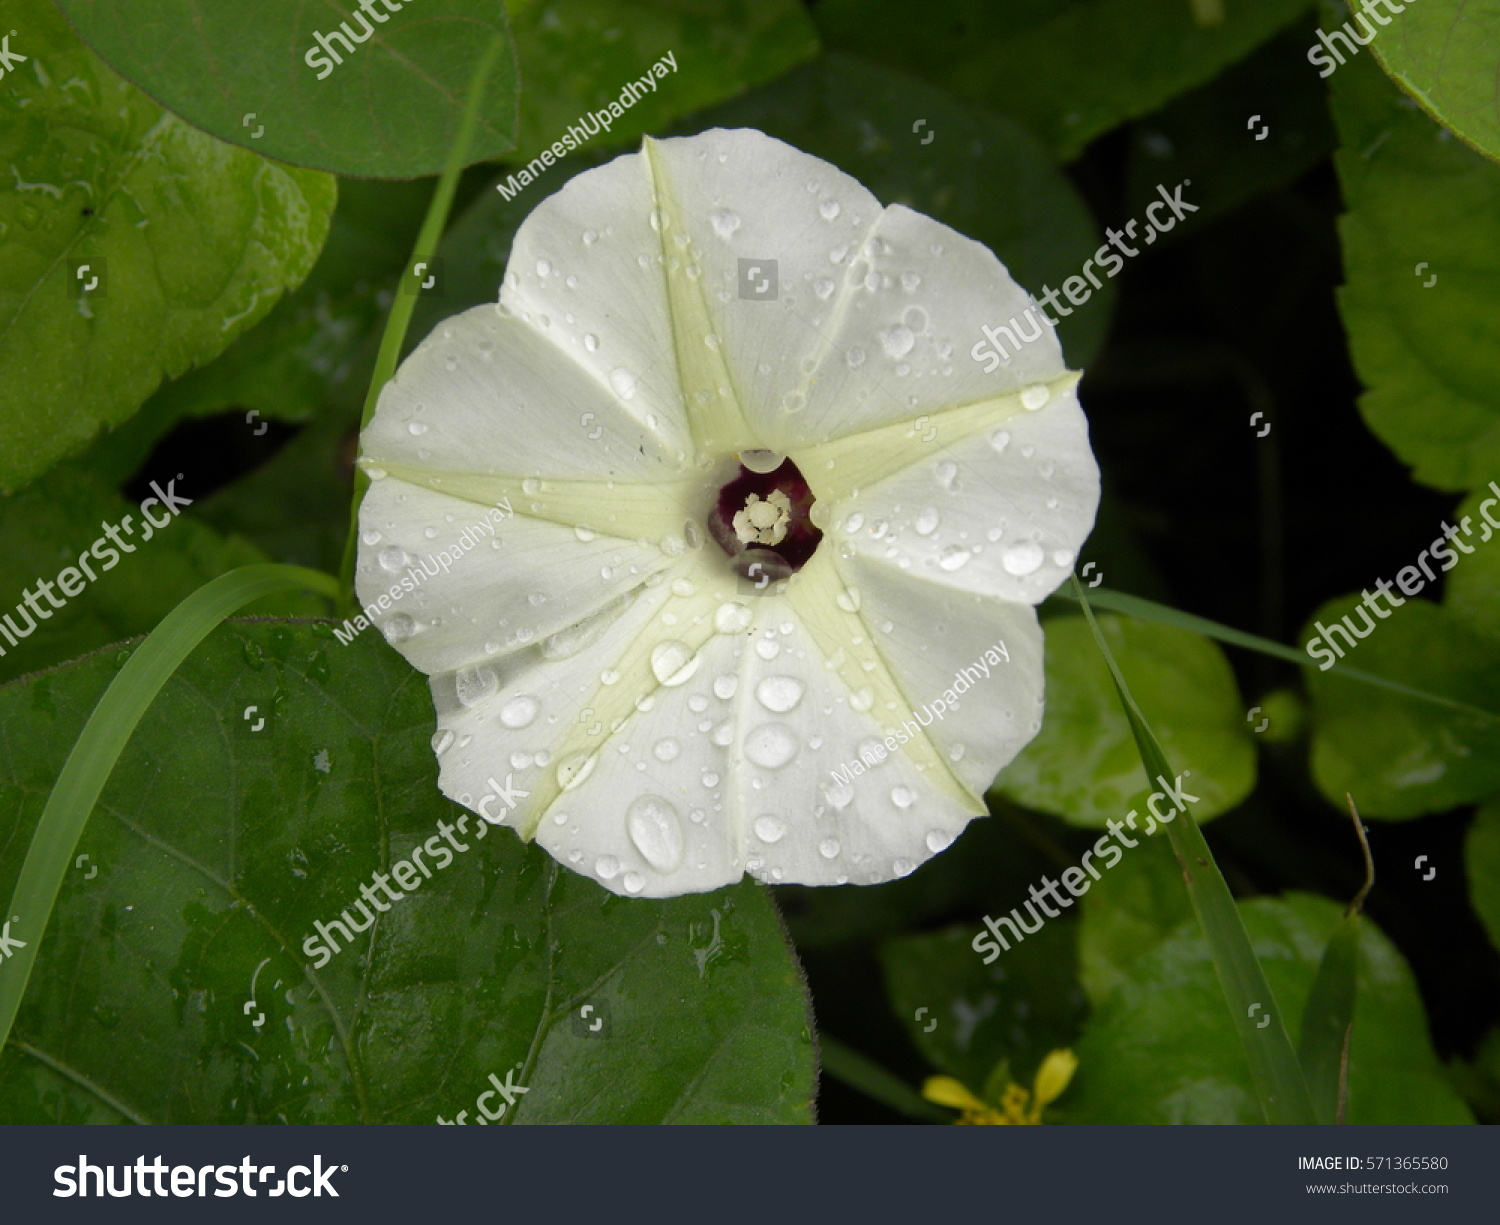 Royalty Free Close Up Of White Flower With Yellow 571365580 Stock